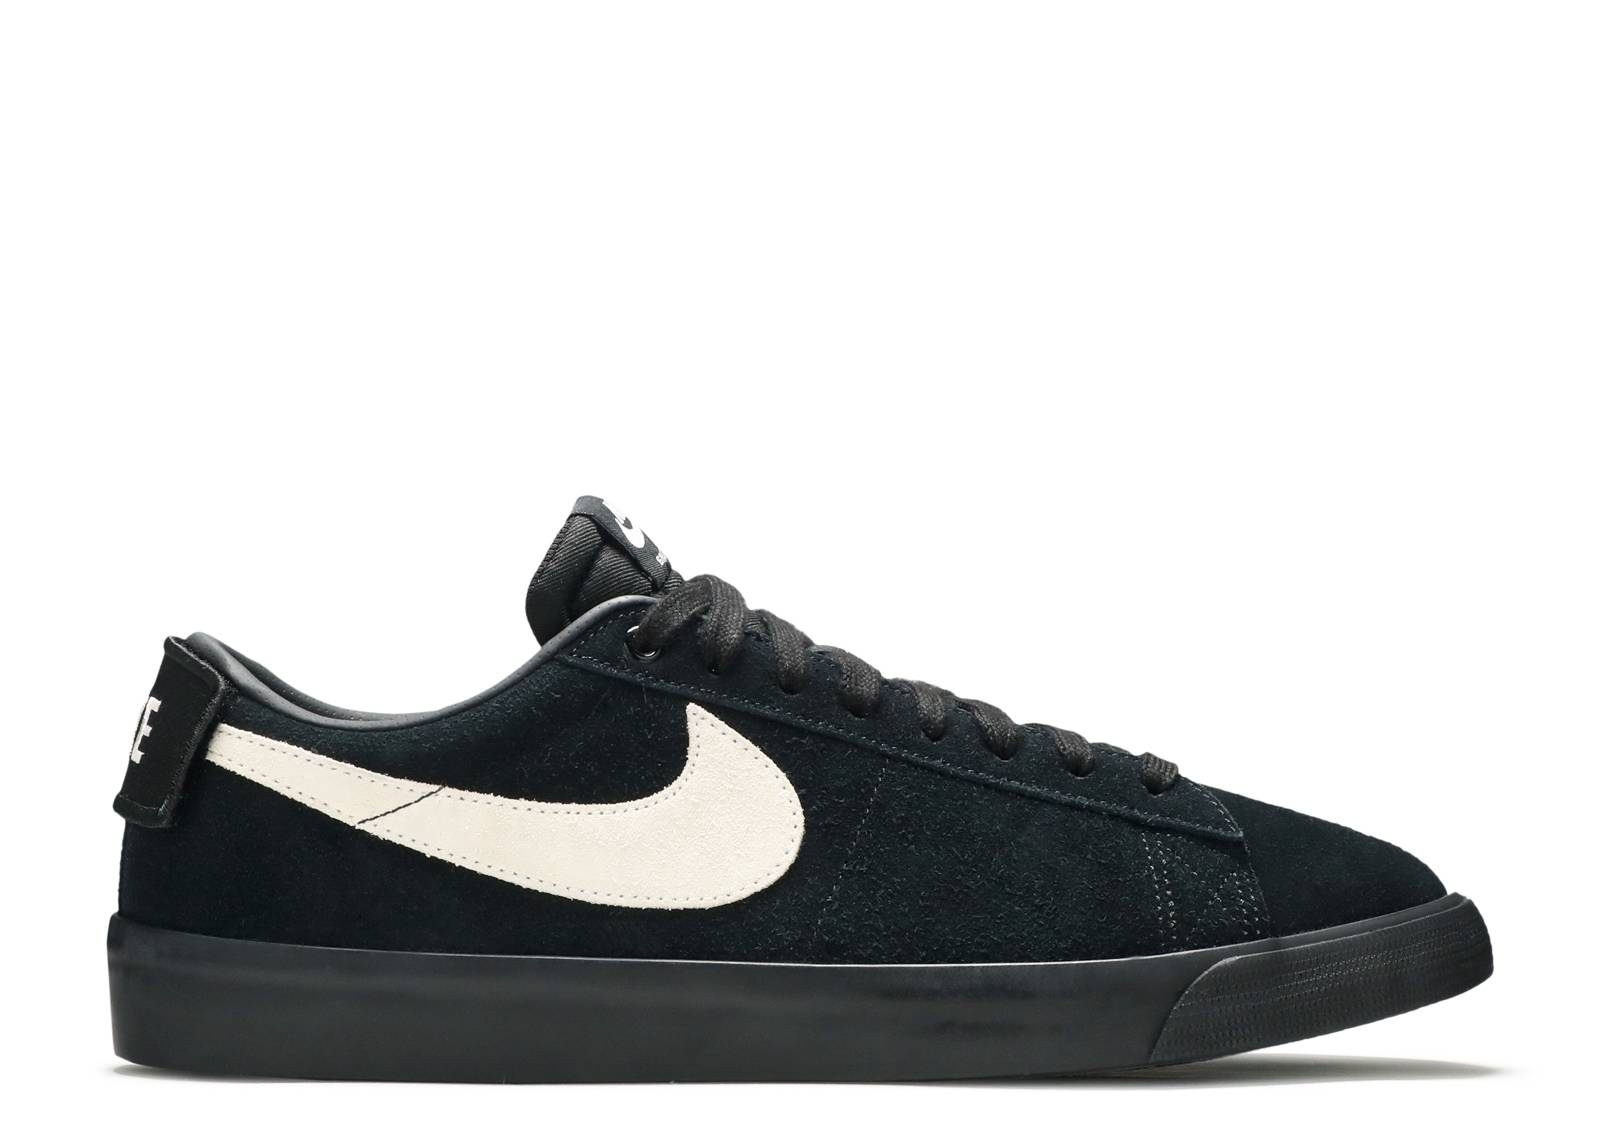 Nike SB Blazer Zoom Low GT